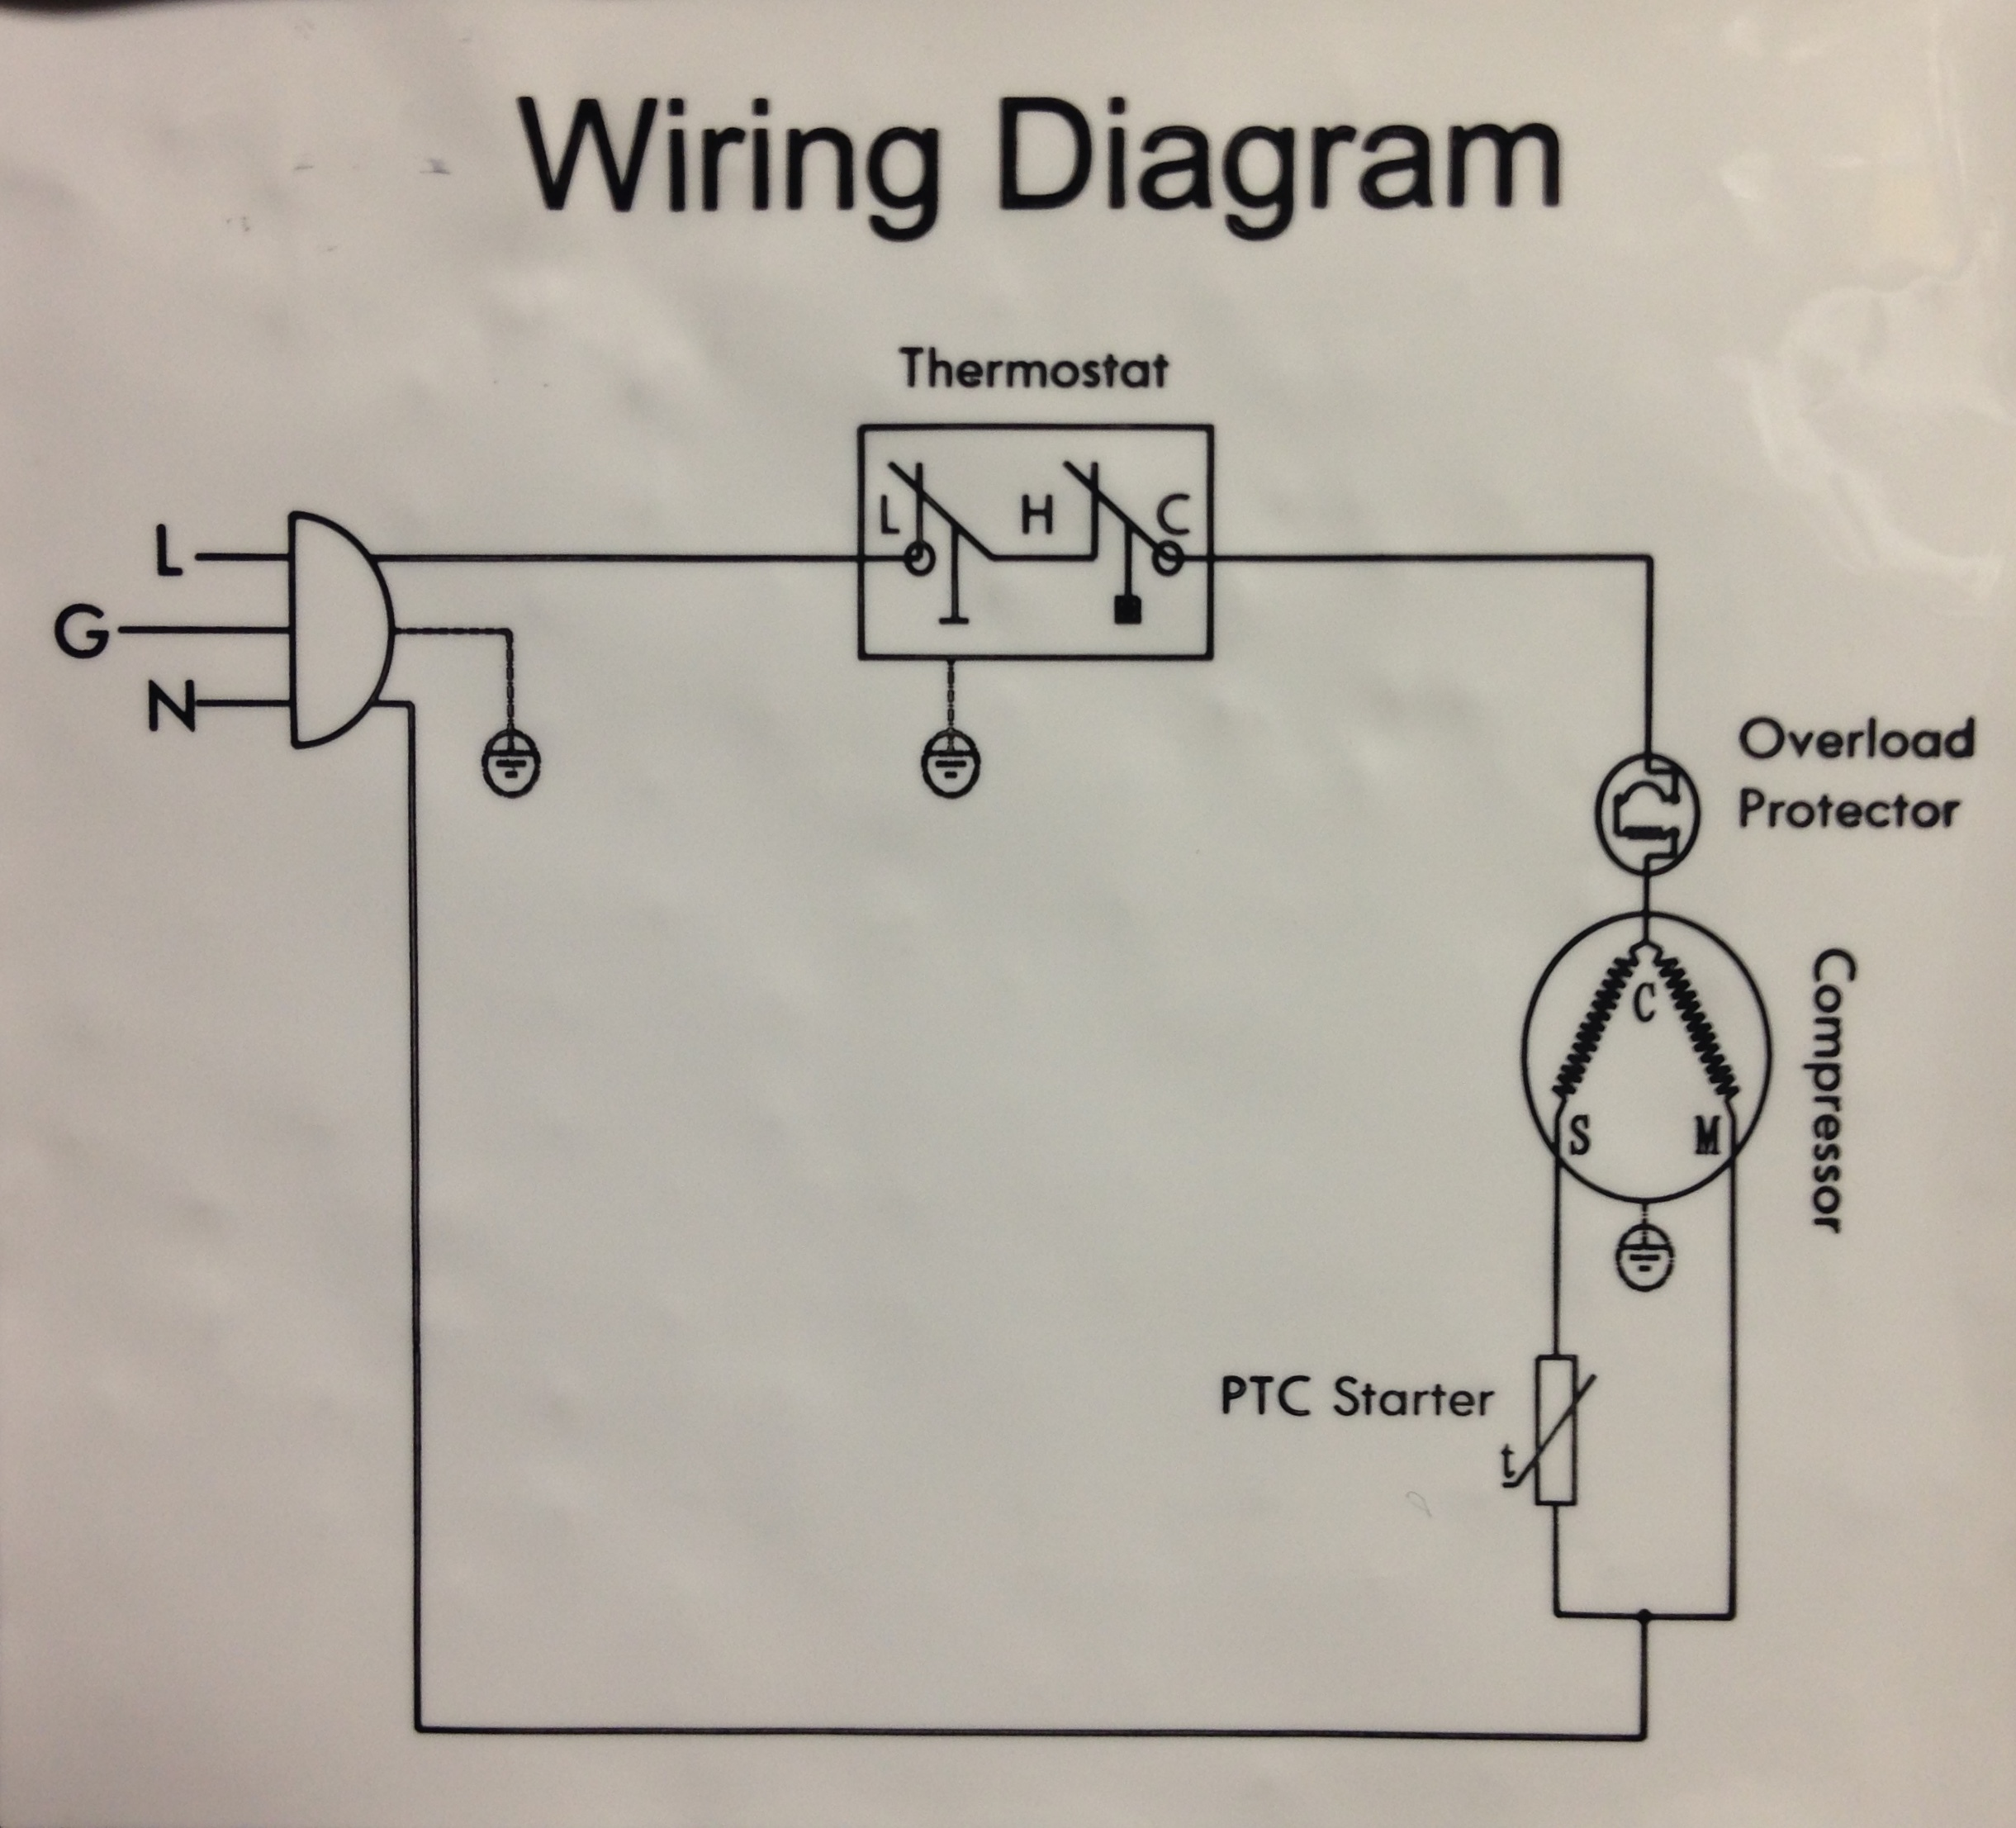 c5986337b4249150884d4e057ccb08b32fe4028e new build electronics newb diagram help fridge build brewpi mini fridge thermostat wiring diagram at arjmand.co